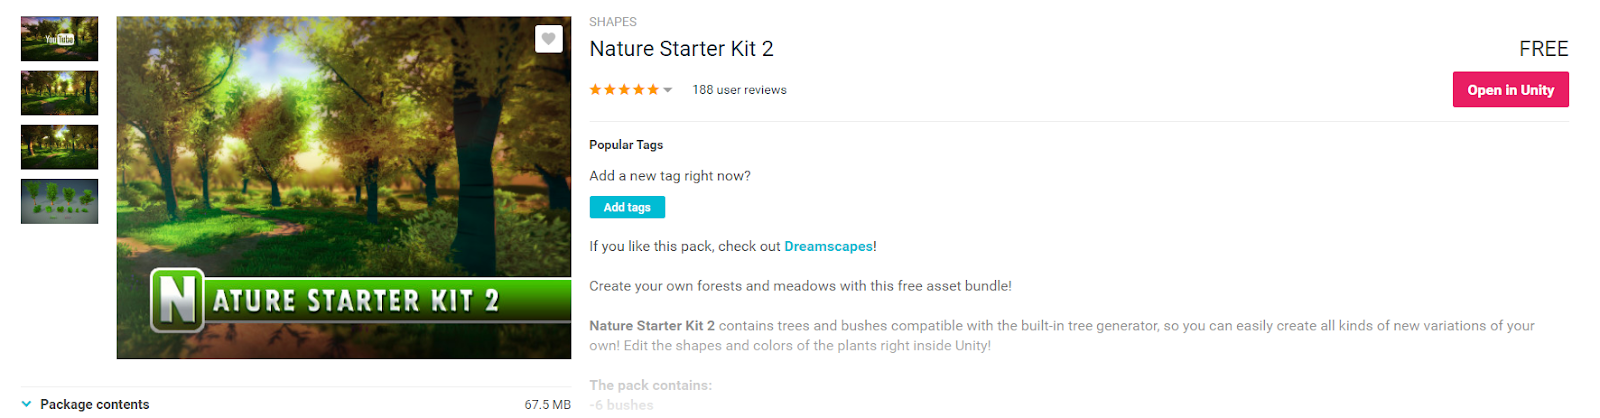 Build a Forest Tree by Tree with the Nature Starter Kit 2 on